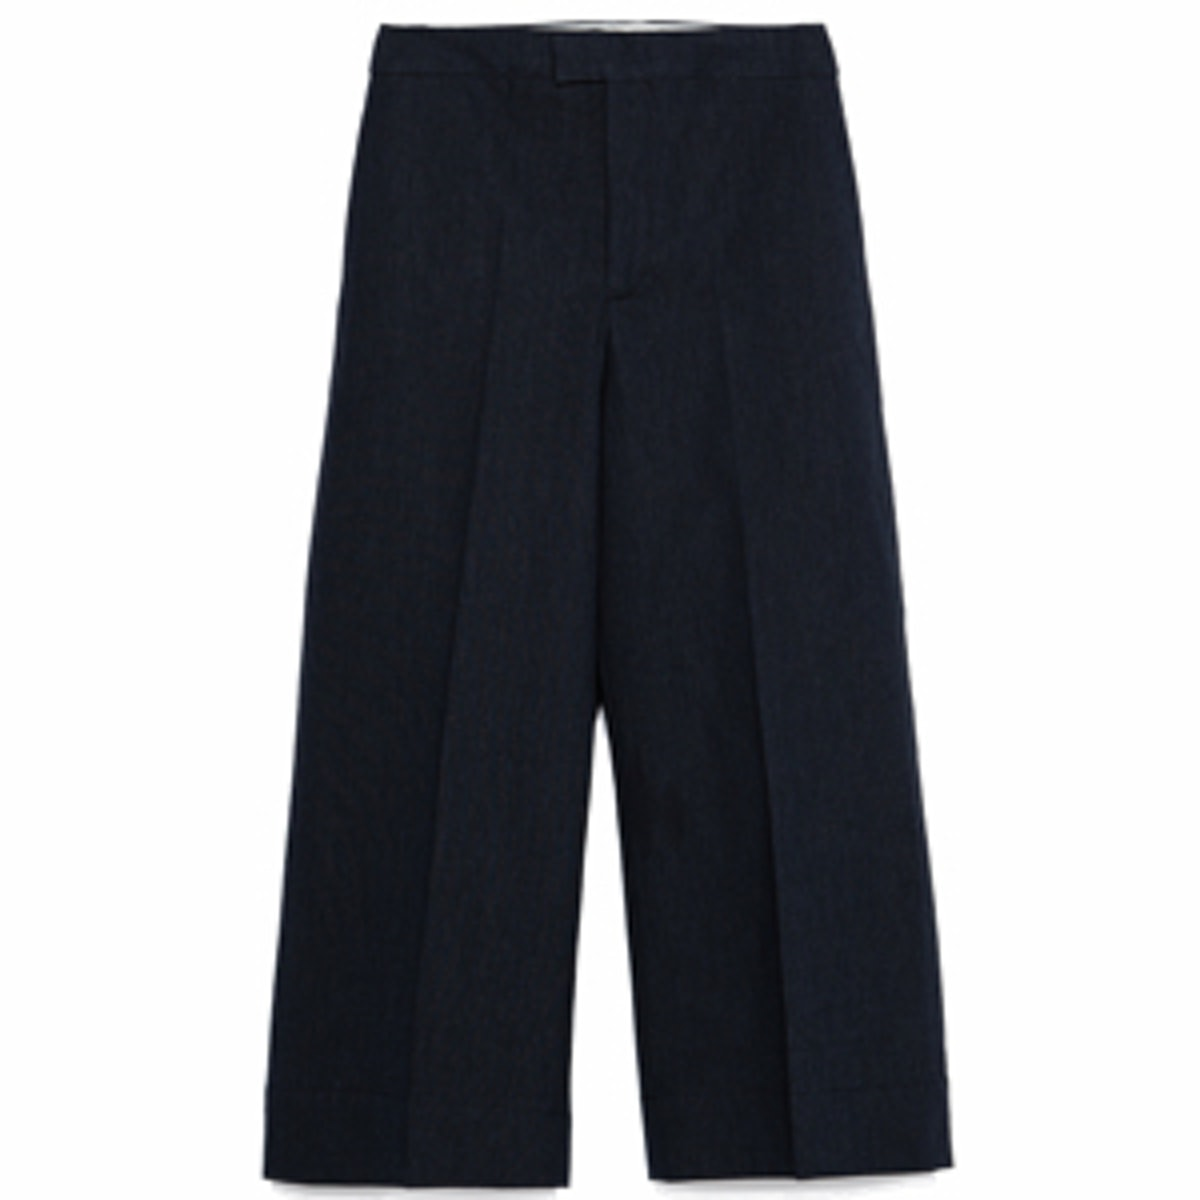 Cropped Trousers in Indigo